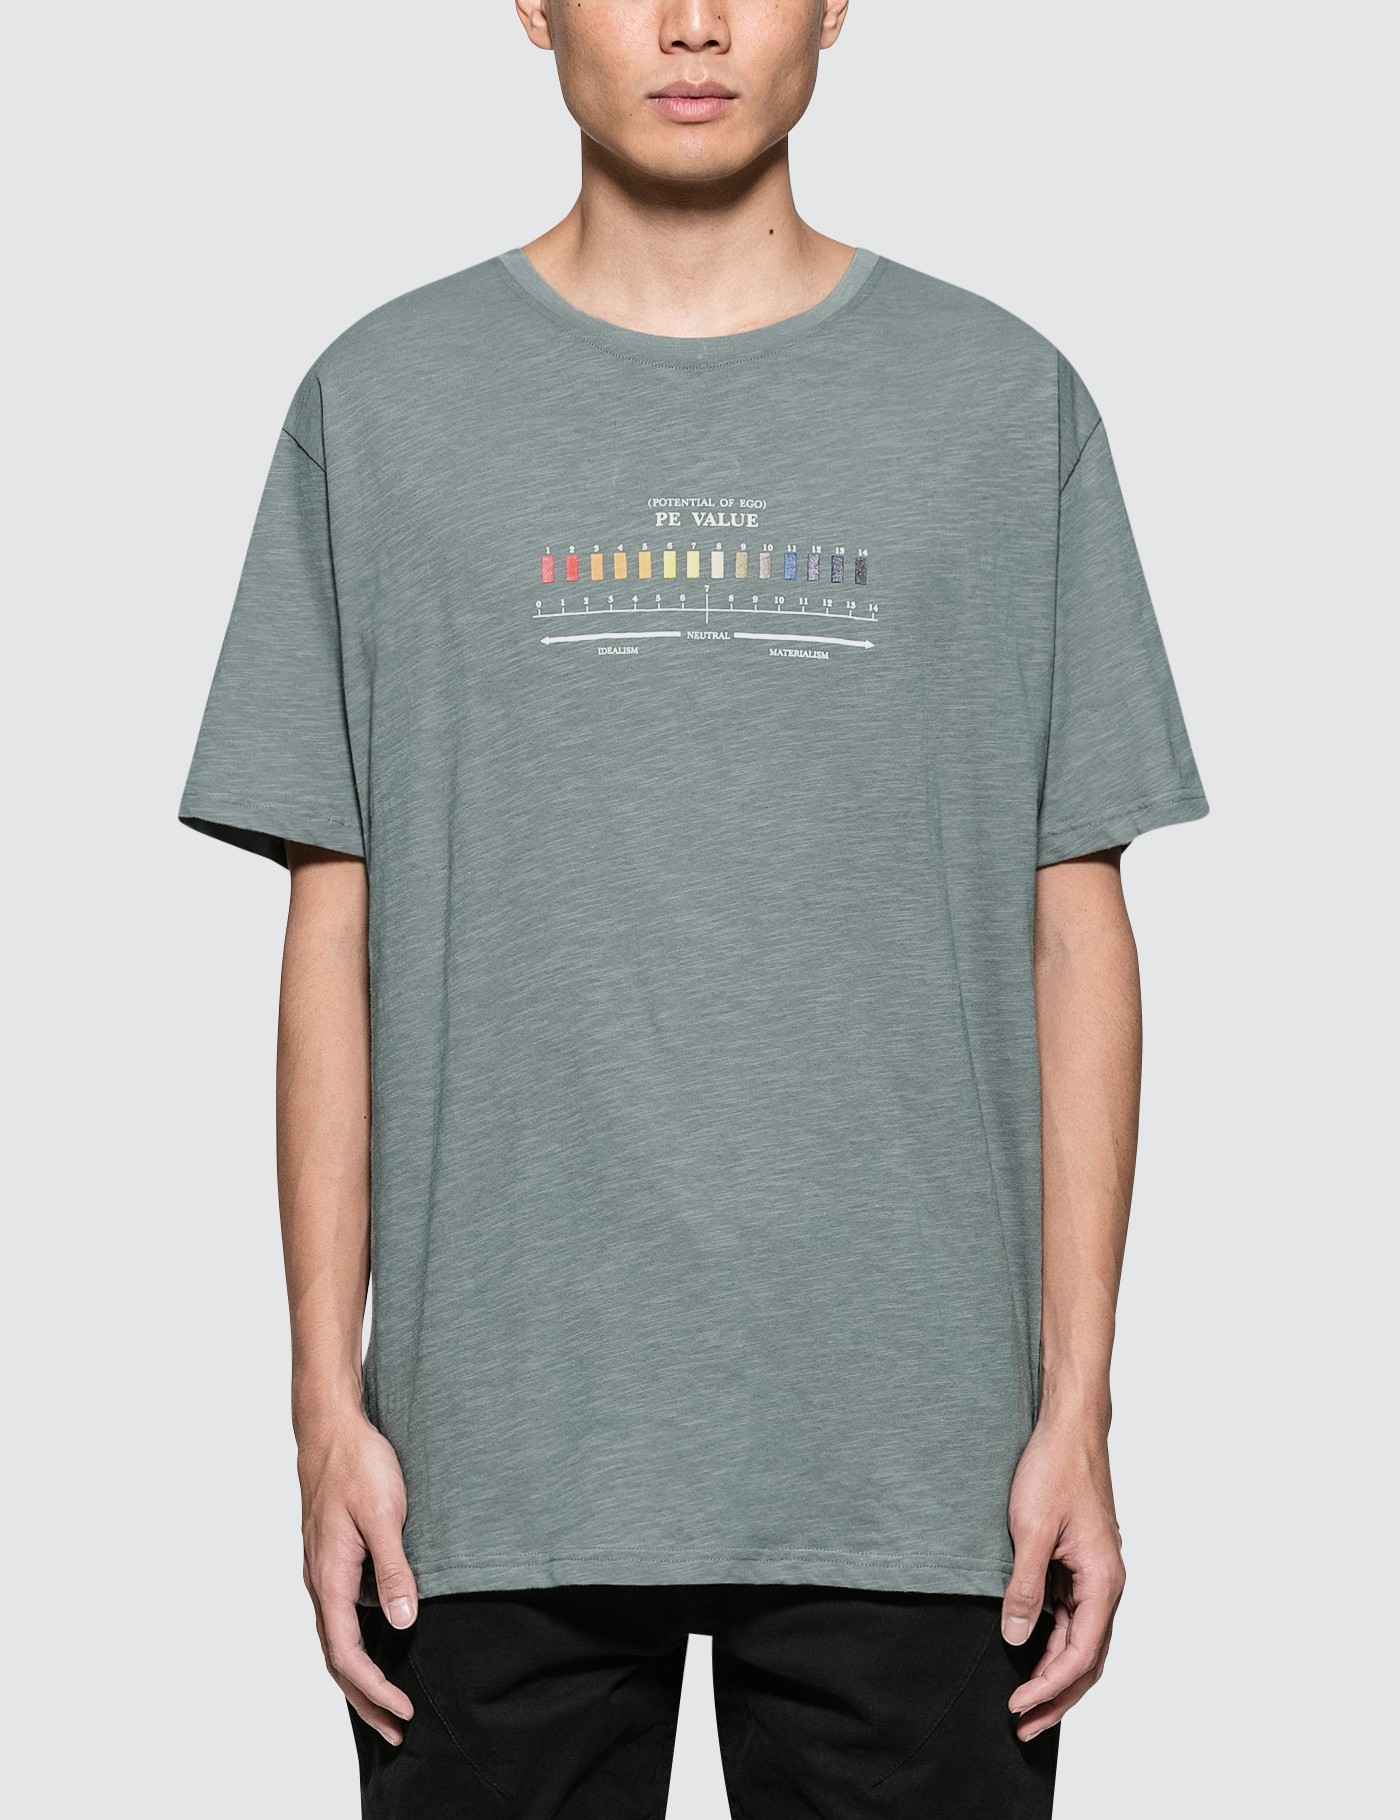 C2H4 Los Angeles Number (N)ine x C2H4 PE Value S/S T-Shirt Picture